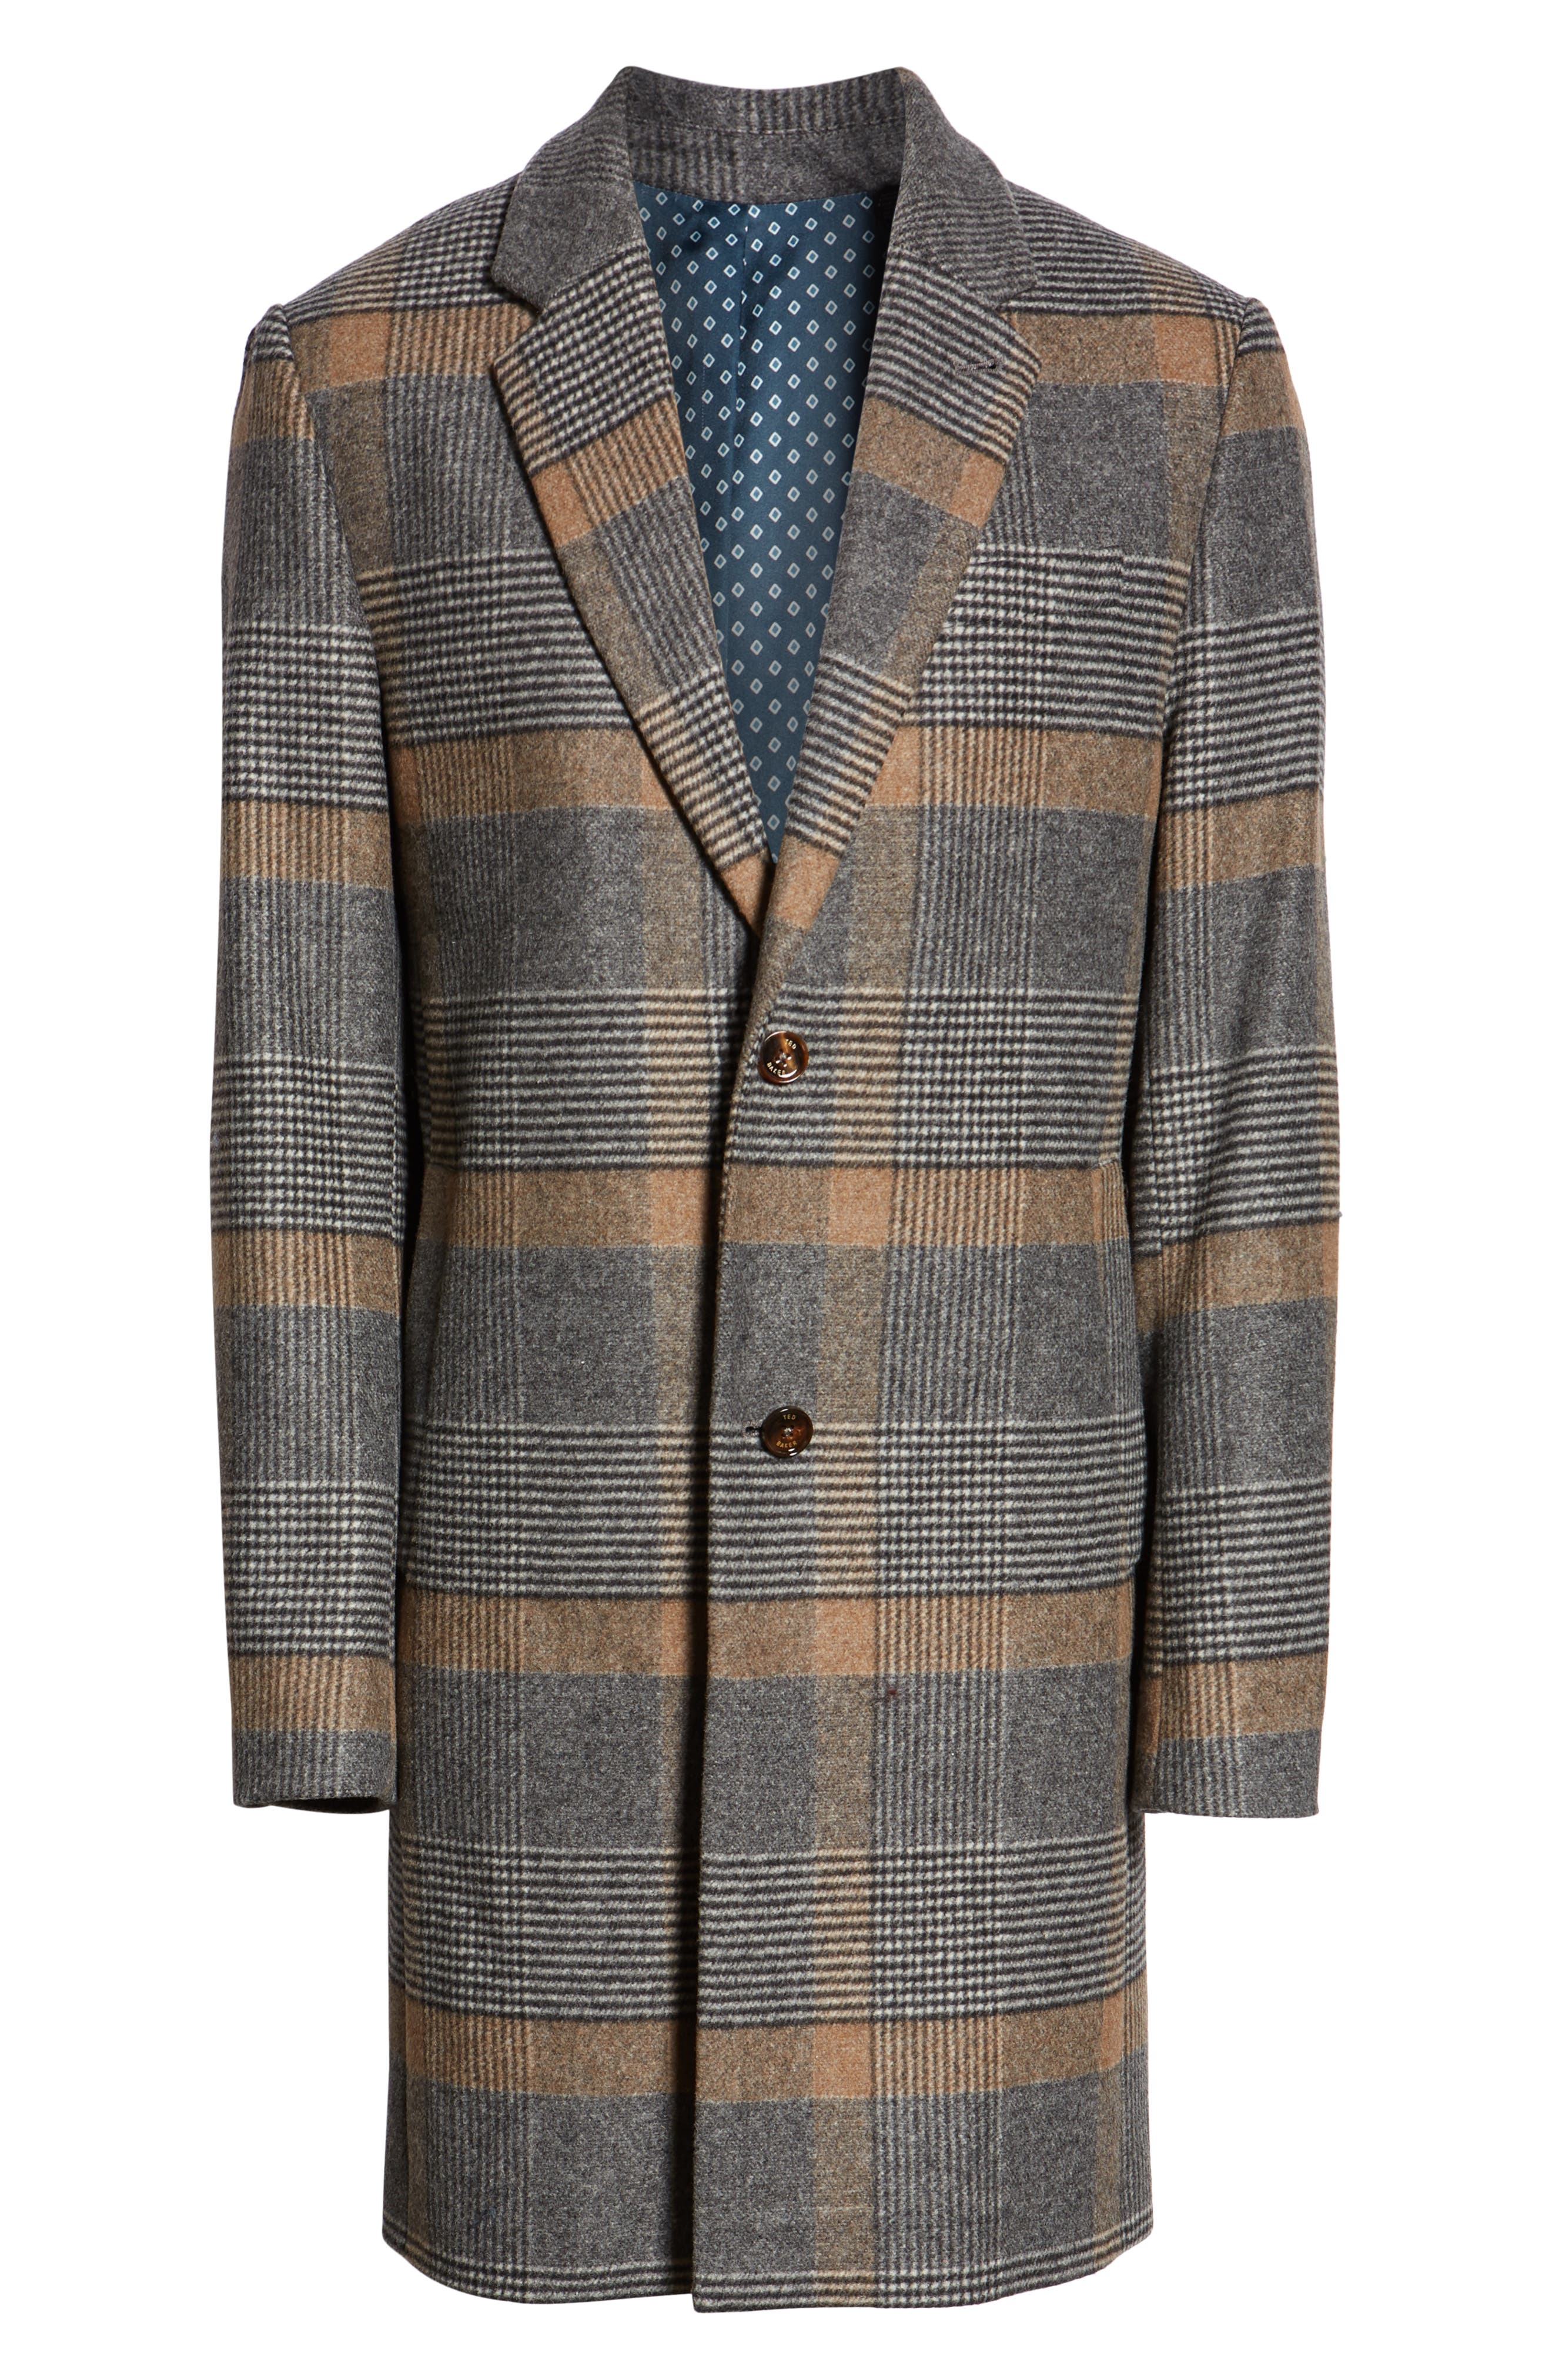 Frais Check Wool Overcoat,                             Alternate thumbnail 6, color,                             CAMEL